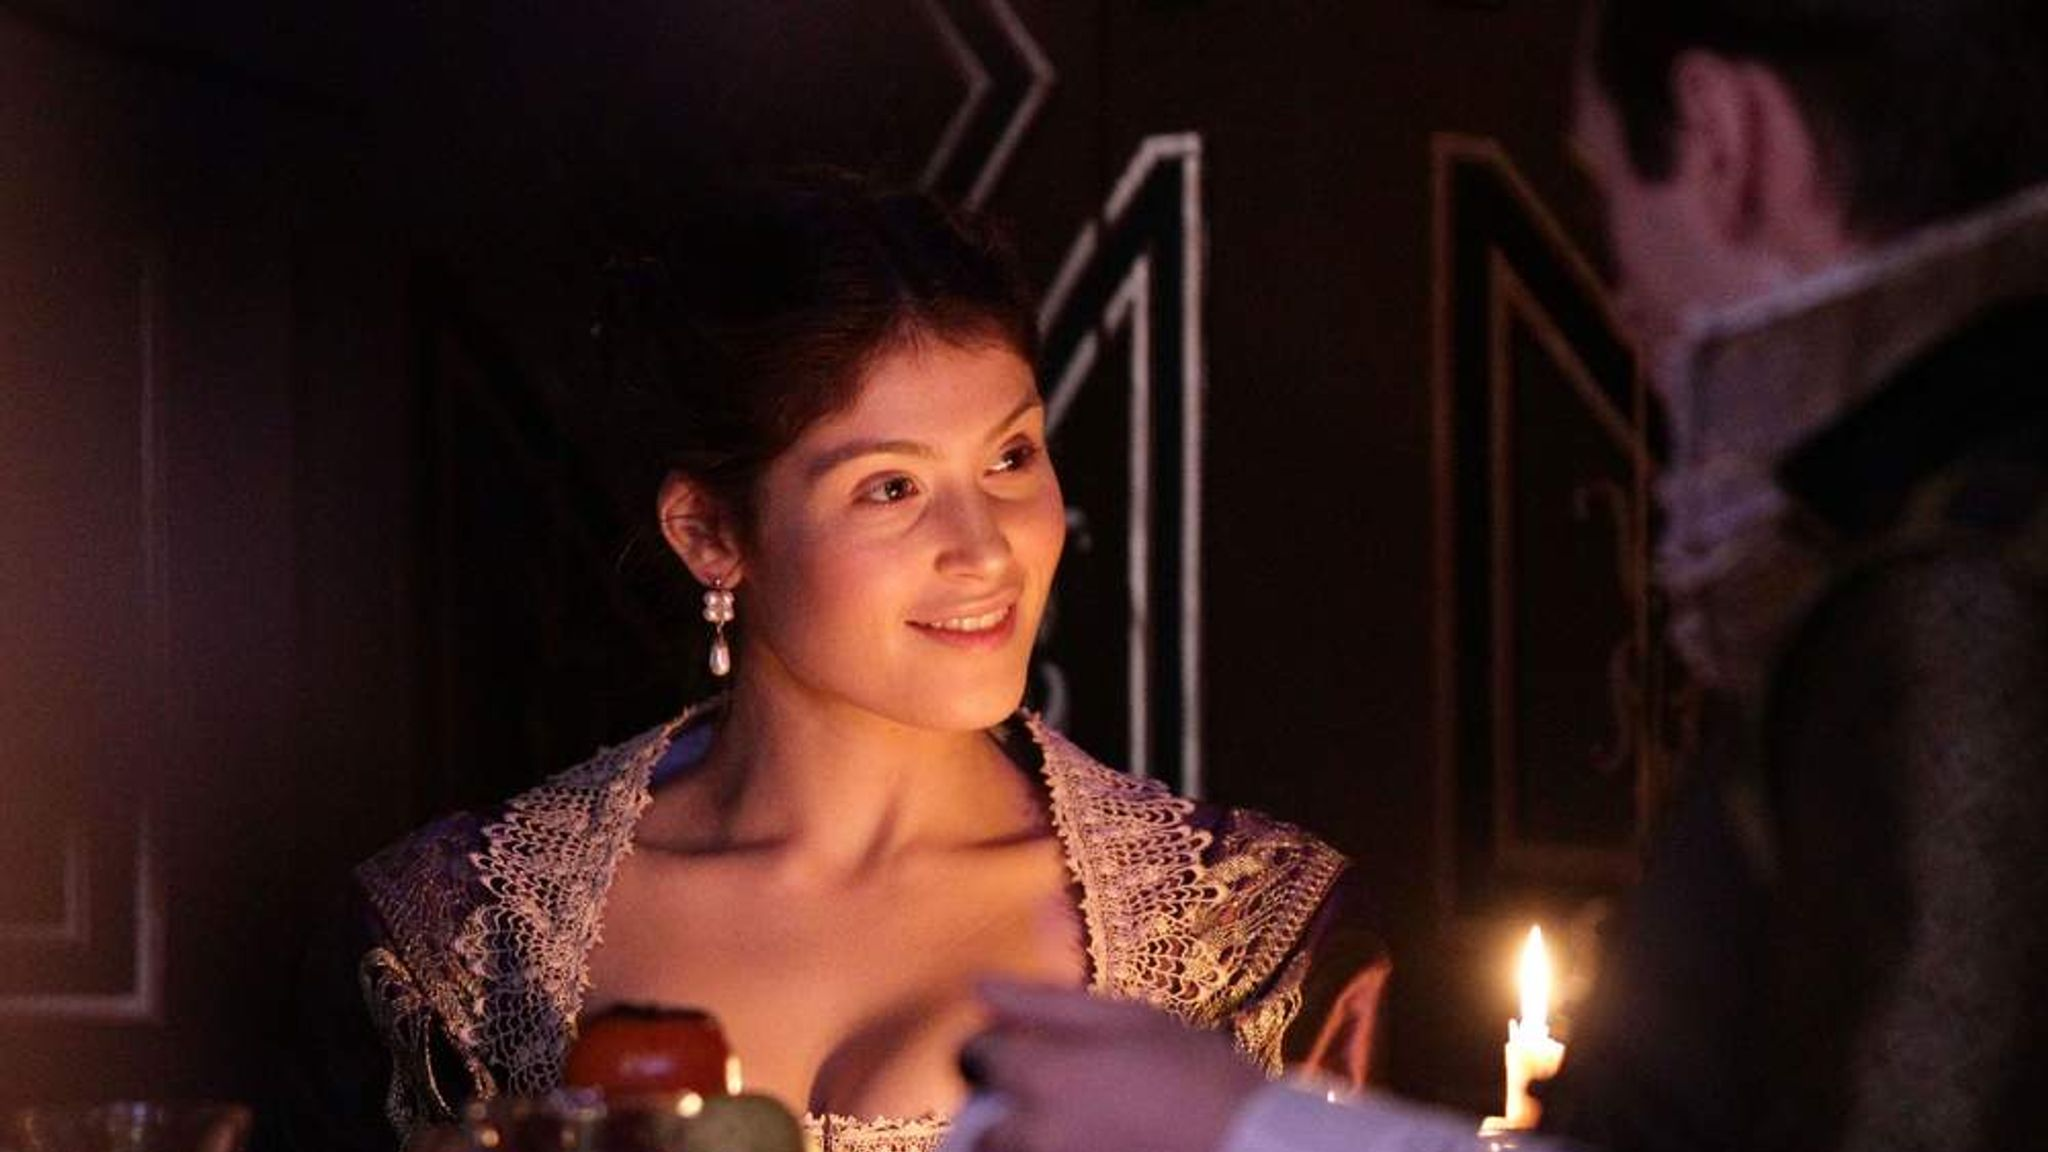 discuss the duchess of malfi as a In the duchess of malfi, bosola plays a role of spy and murderer but at the end of play, he plays a role of noble and avengerso his role is significant he keeps a link between ferdinand and duchess.